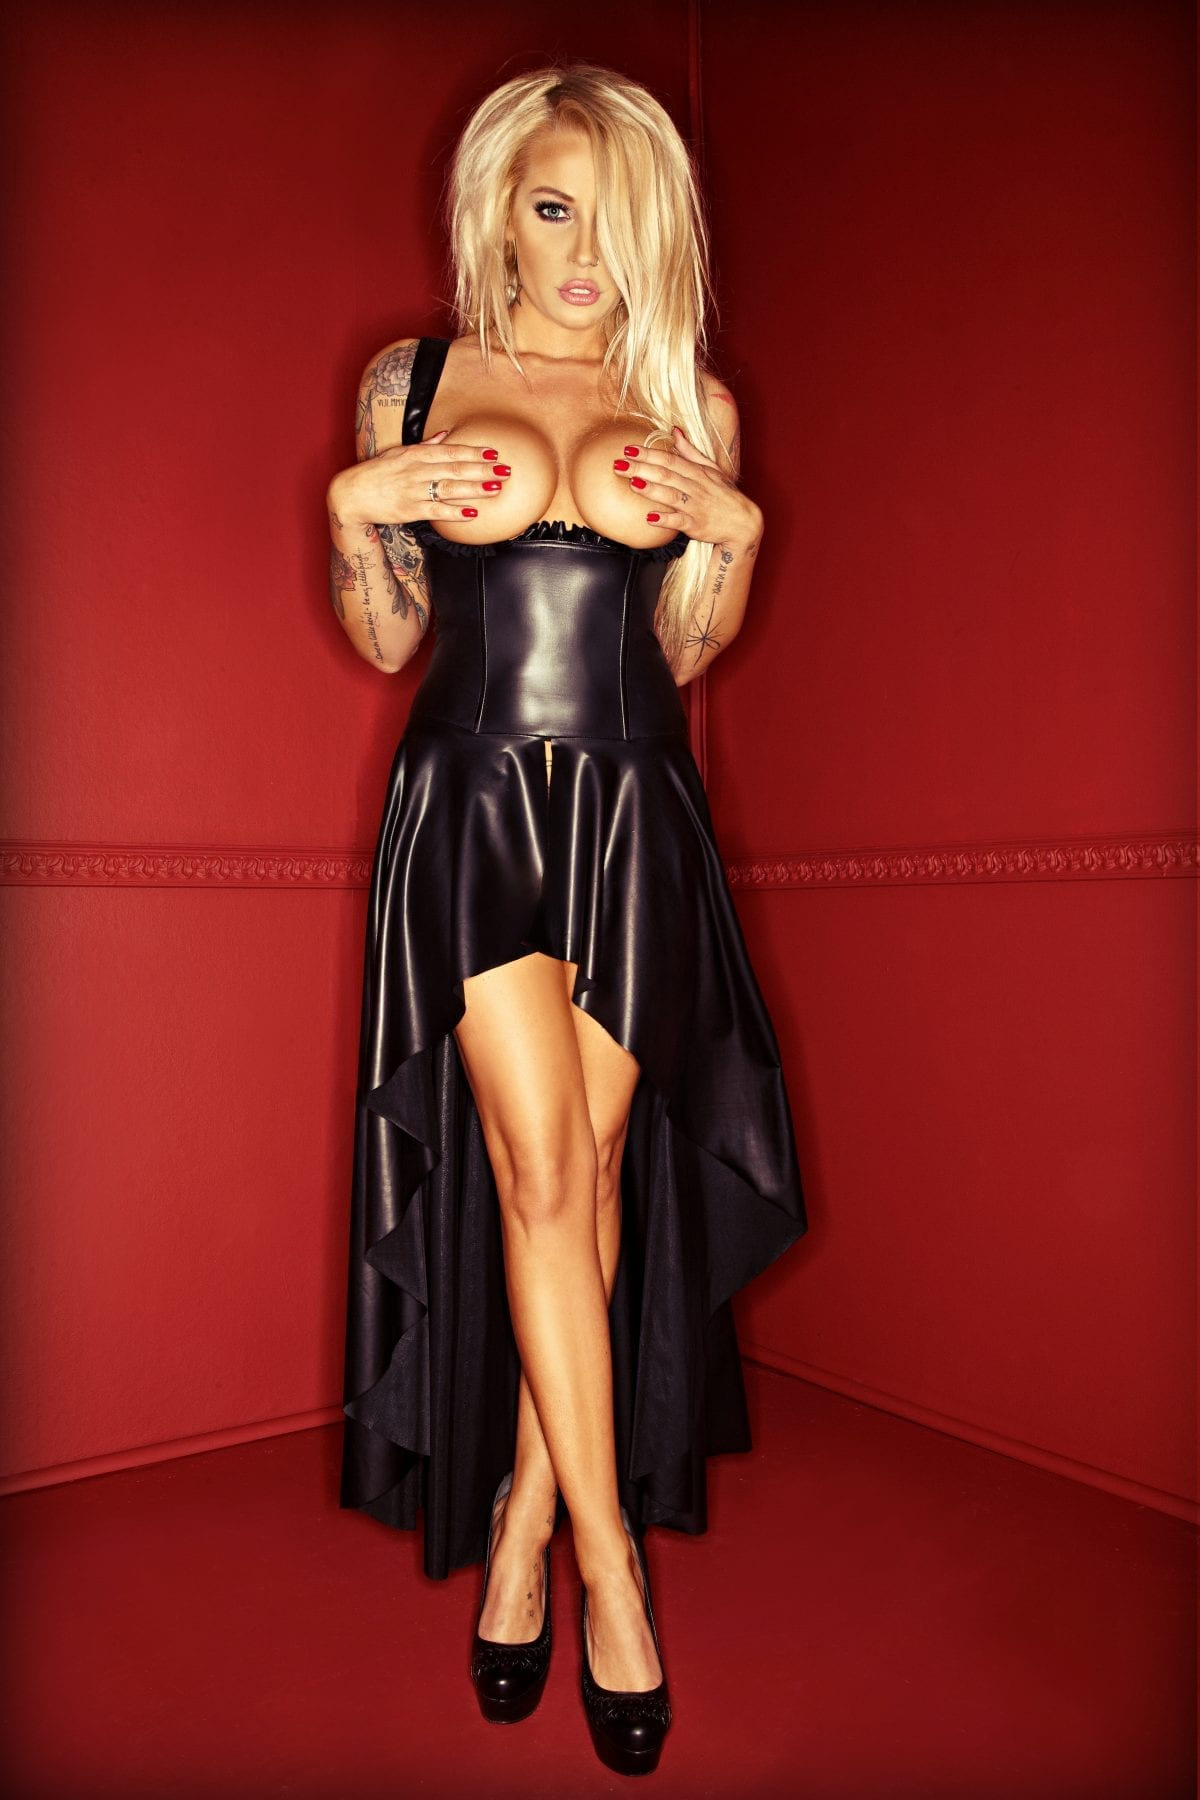 F069 ultra sexy women black long fetish dress revealing breasts with lace at the back